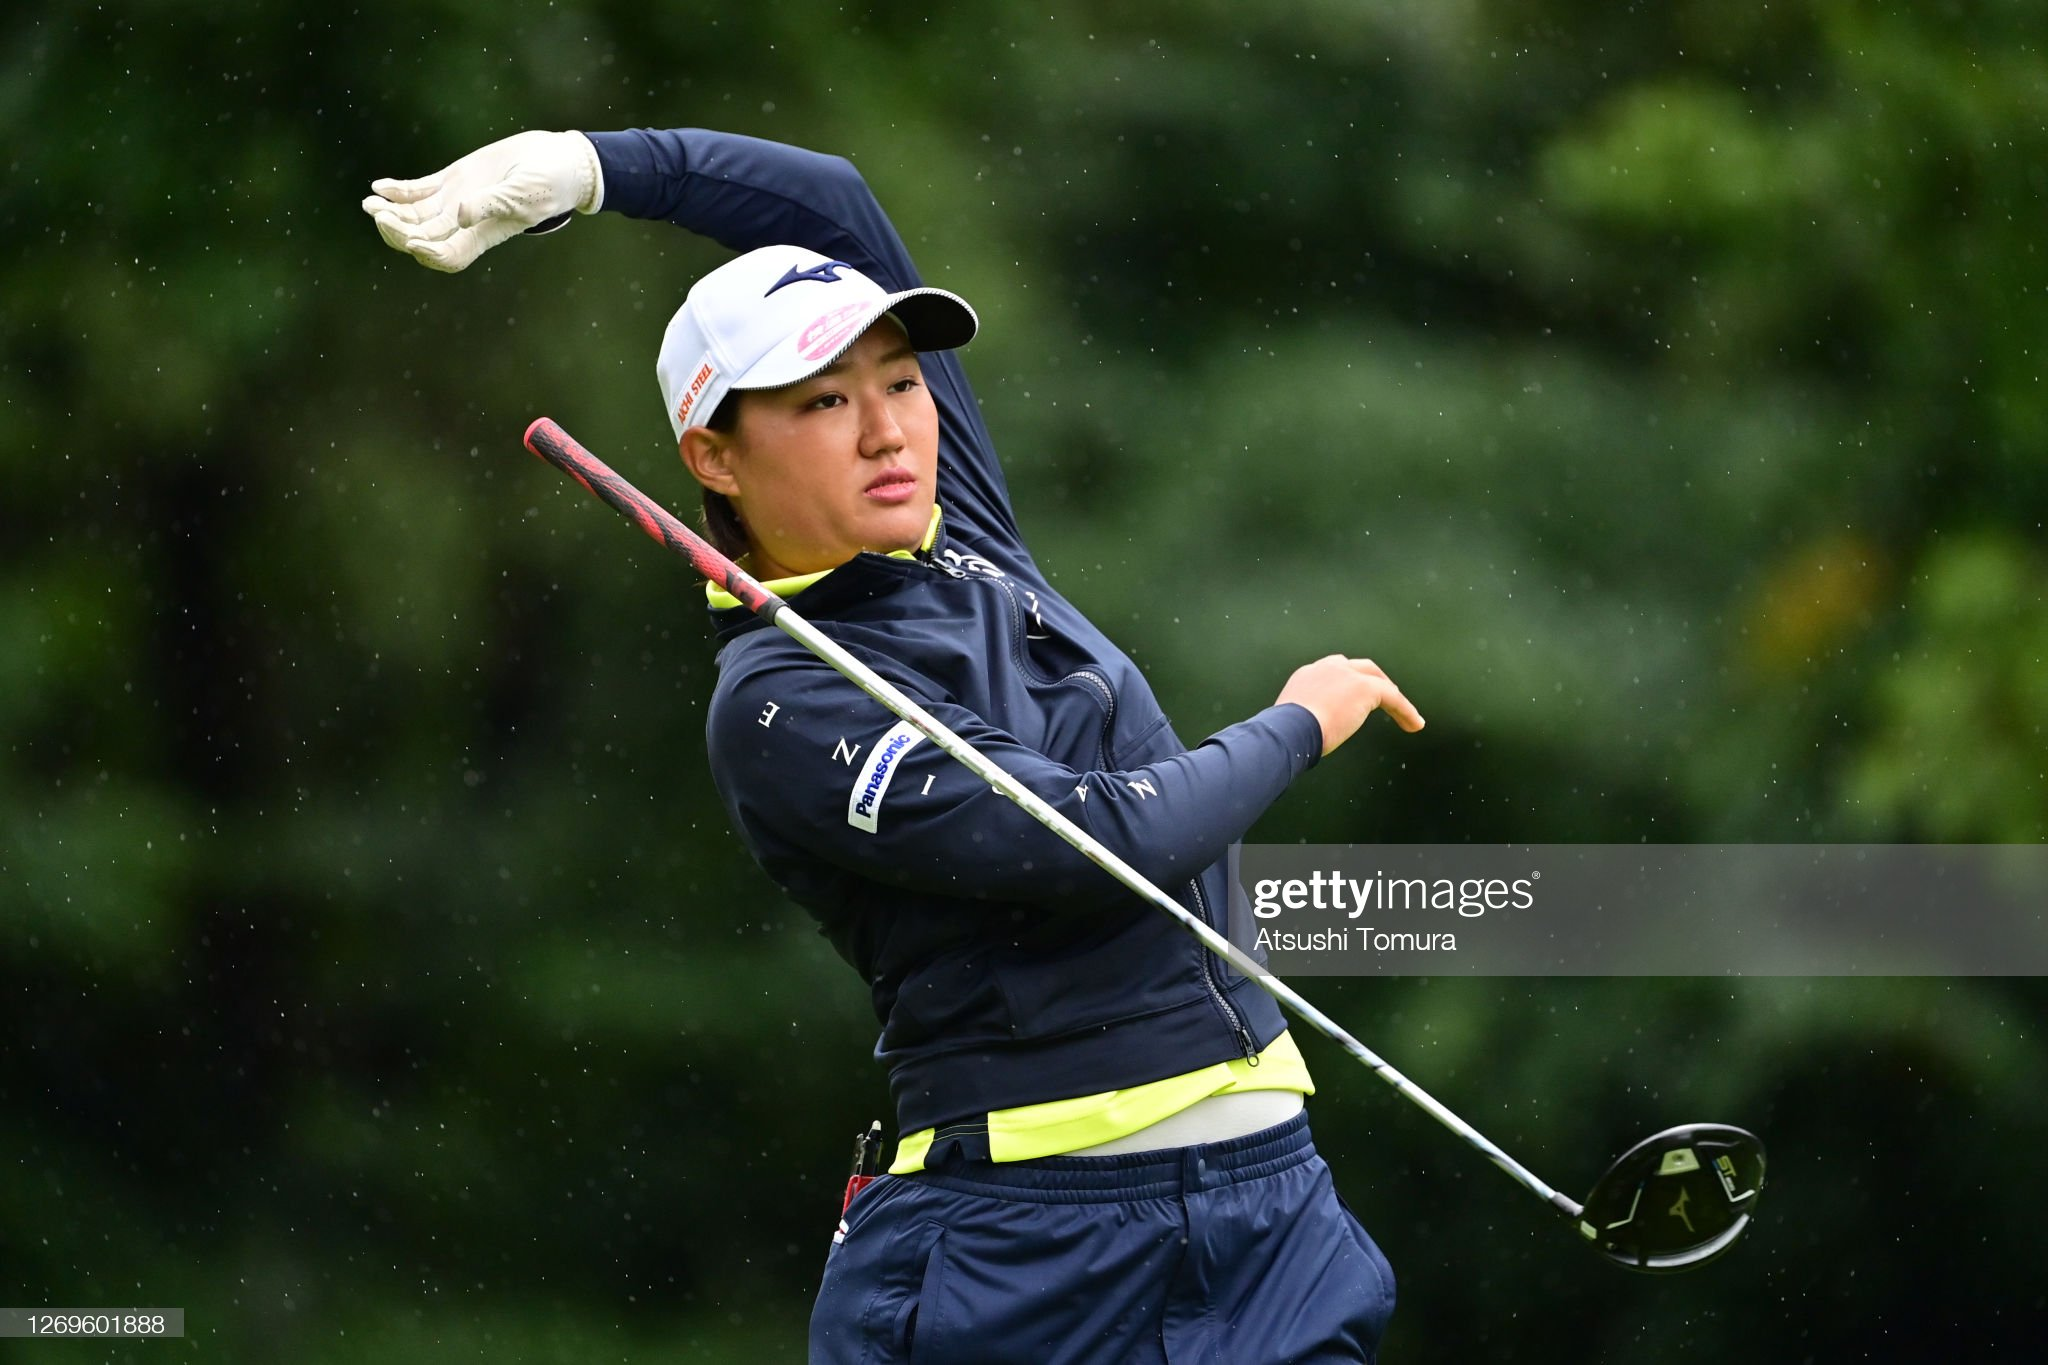 https://media.gettyimages.com/photos/mao-nozawa-of-japan-reacts-after-her-tee-shot-on-the-2nd-hole-during-picture-id1269601888?s=2048x2048